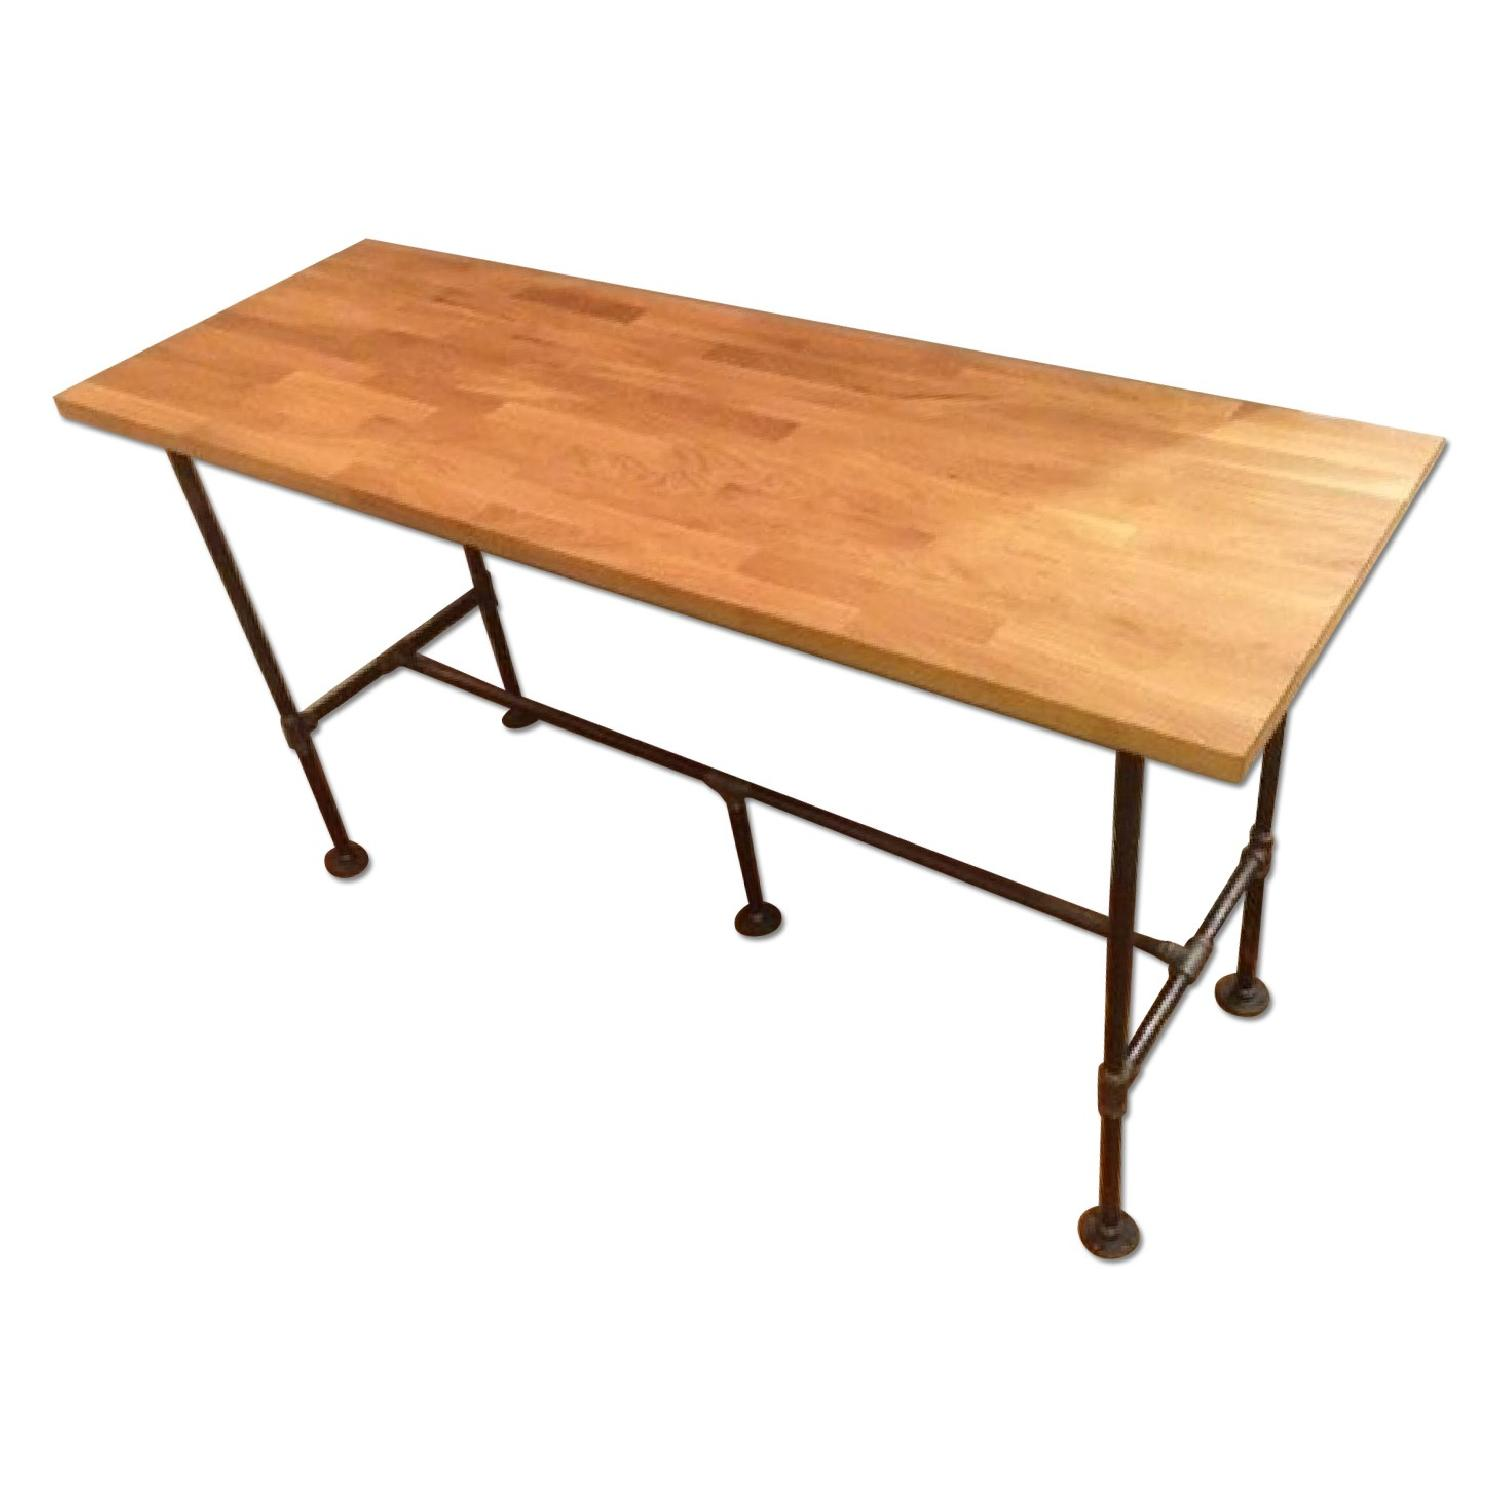 Industrial high top counter dining table standing desk for High dining table